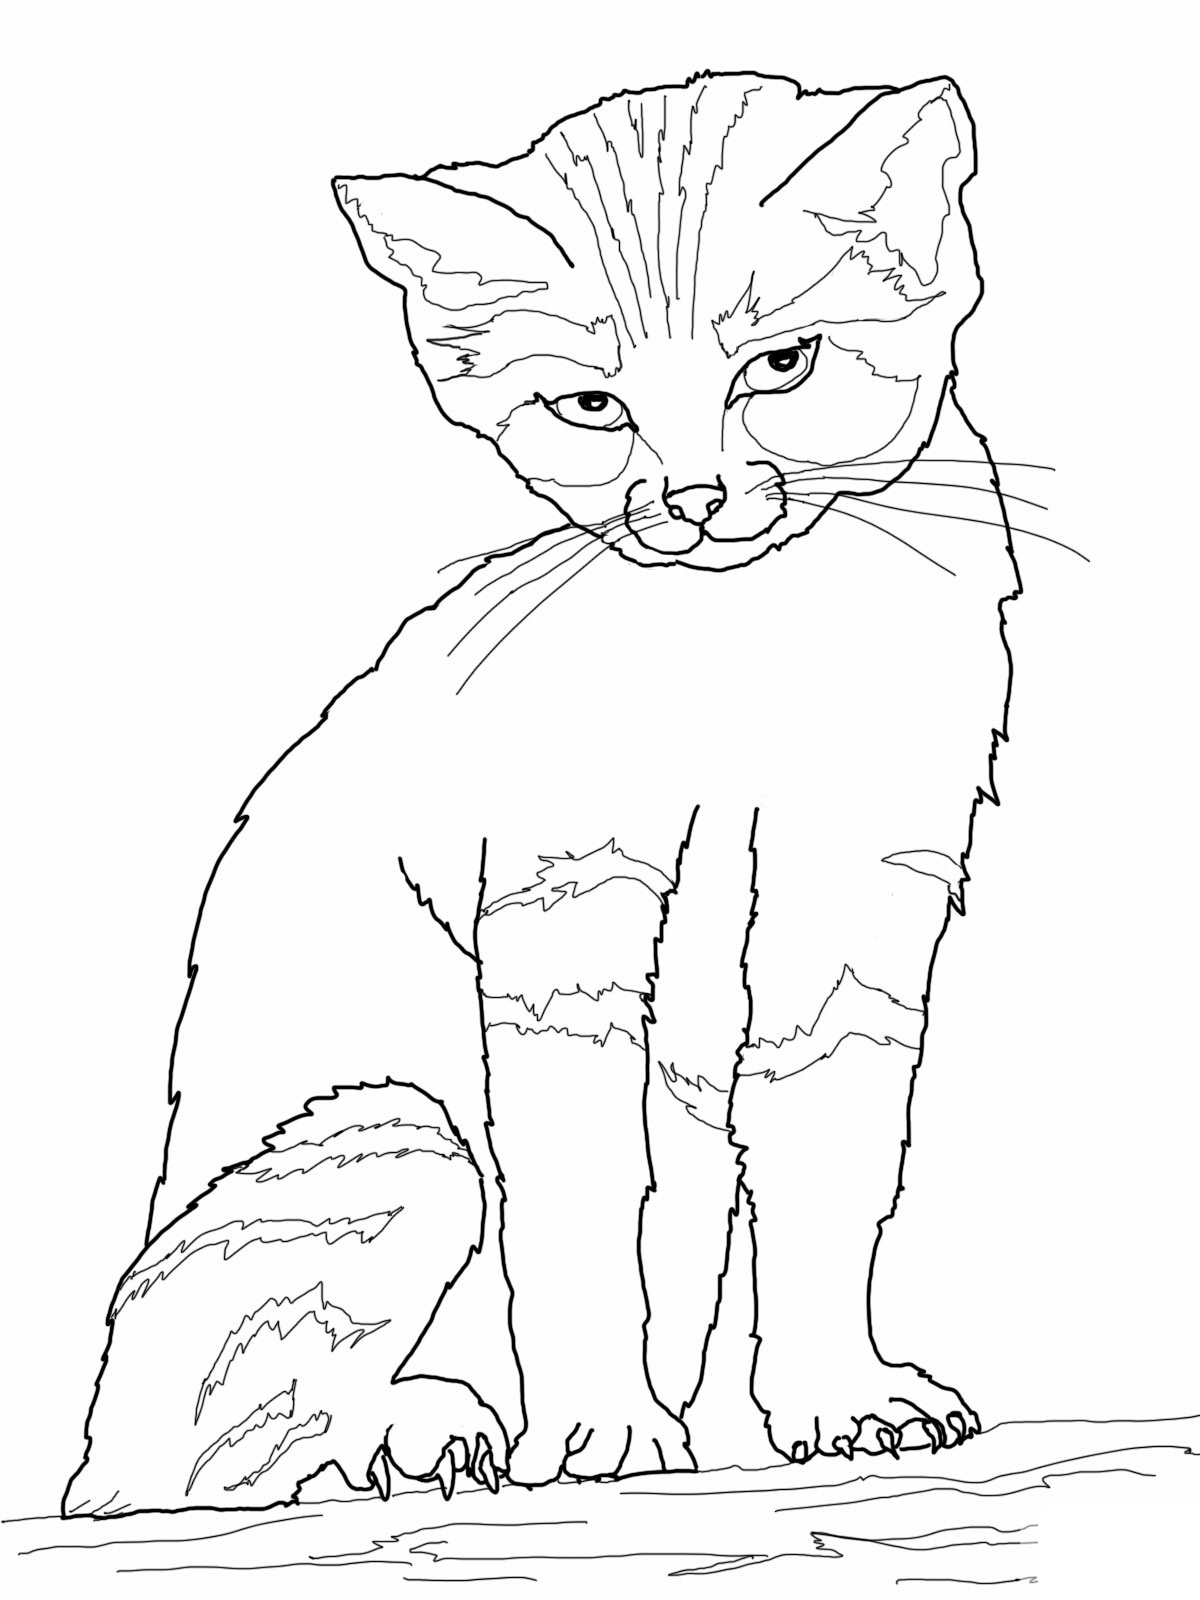 Candid image pertaining to cat coloring pages printable